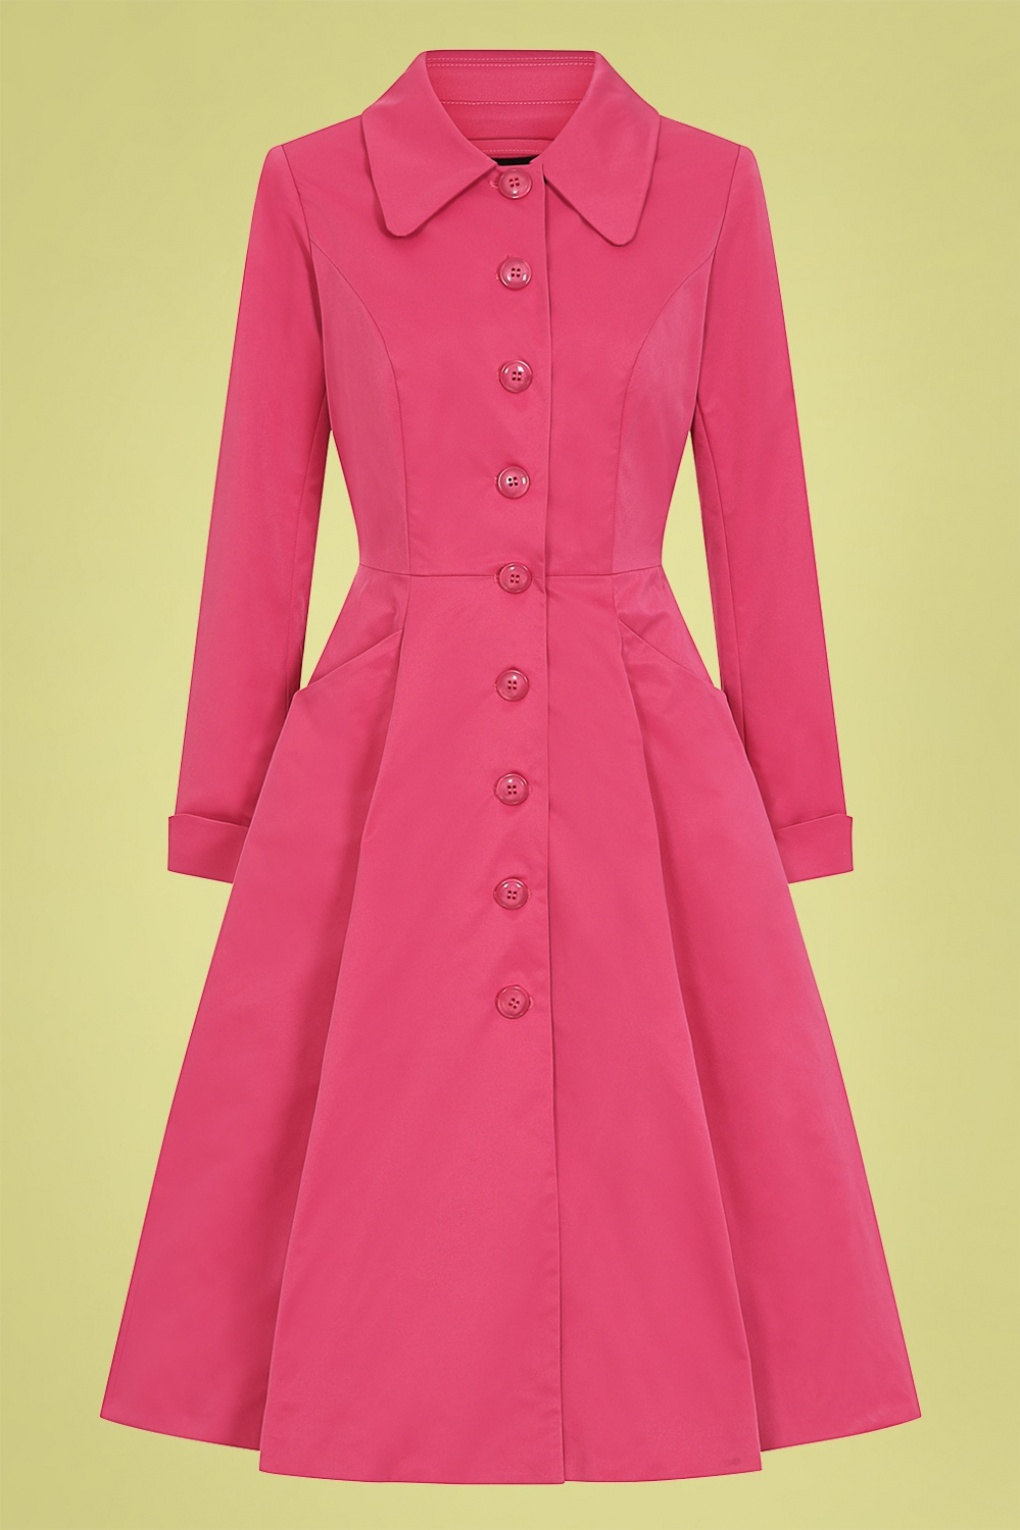 Vintage Coats & Jackets | Retro Coats and Jackets 50s Zara Swing Trench Coat in Fuchsia £19.95 AT vintagedancer.com